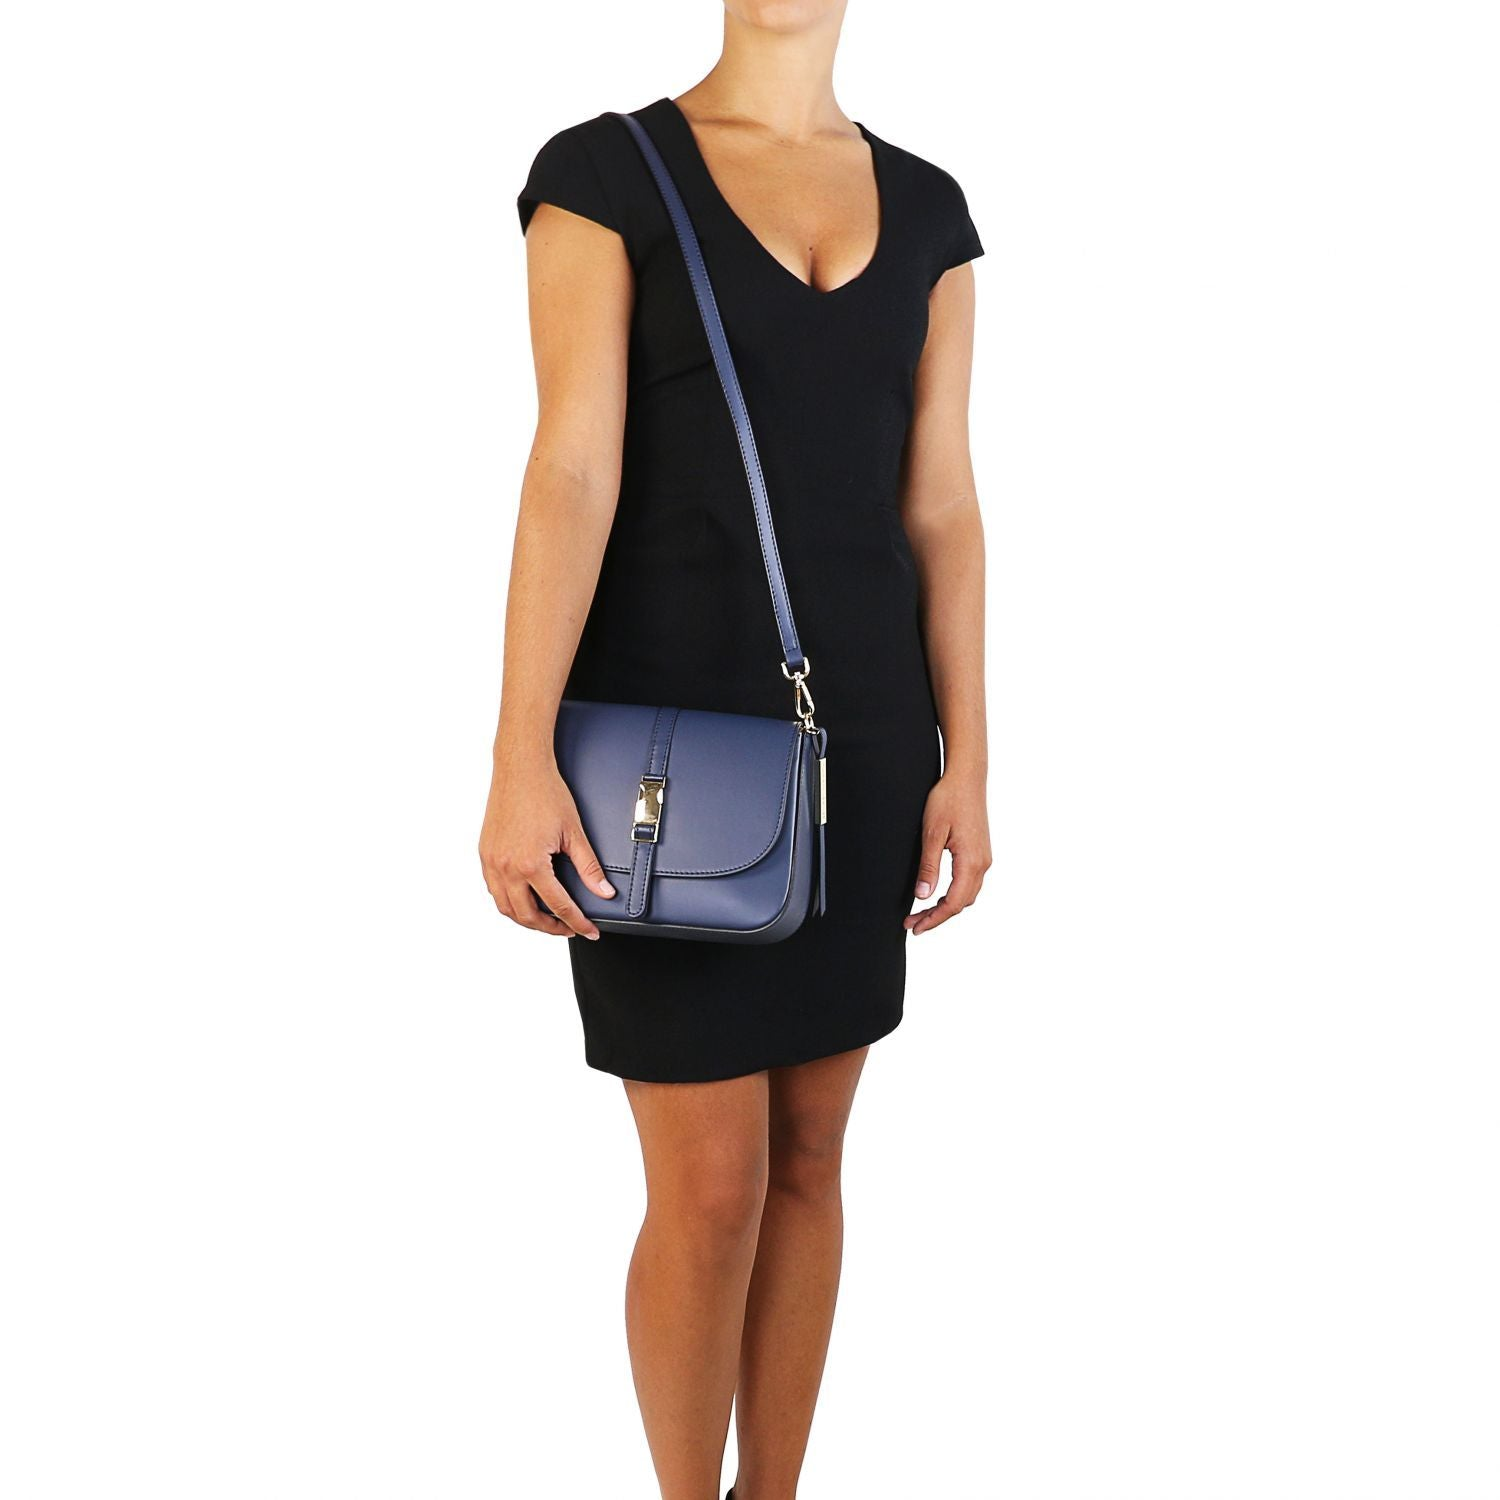 Nausica - Leather shoulder bag (TL141598) - Leather shoulder bags | DILUSSOBAGS